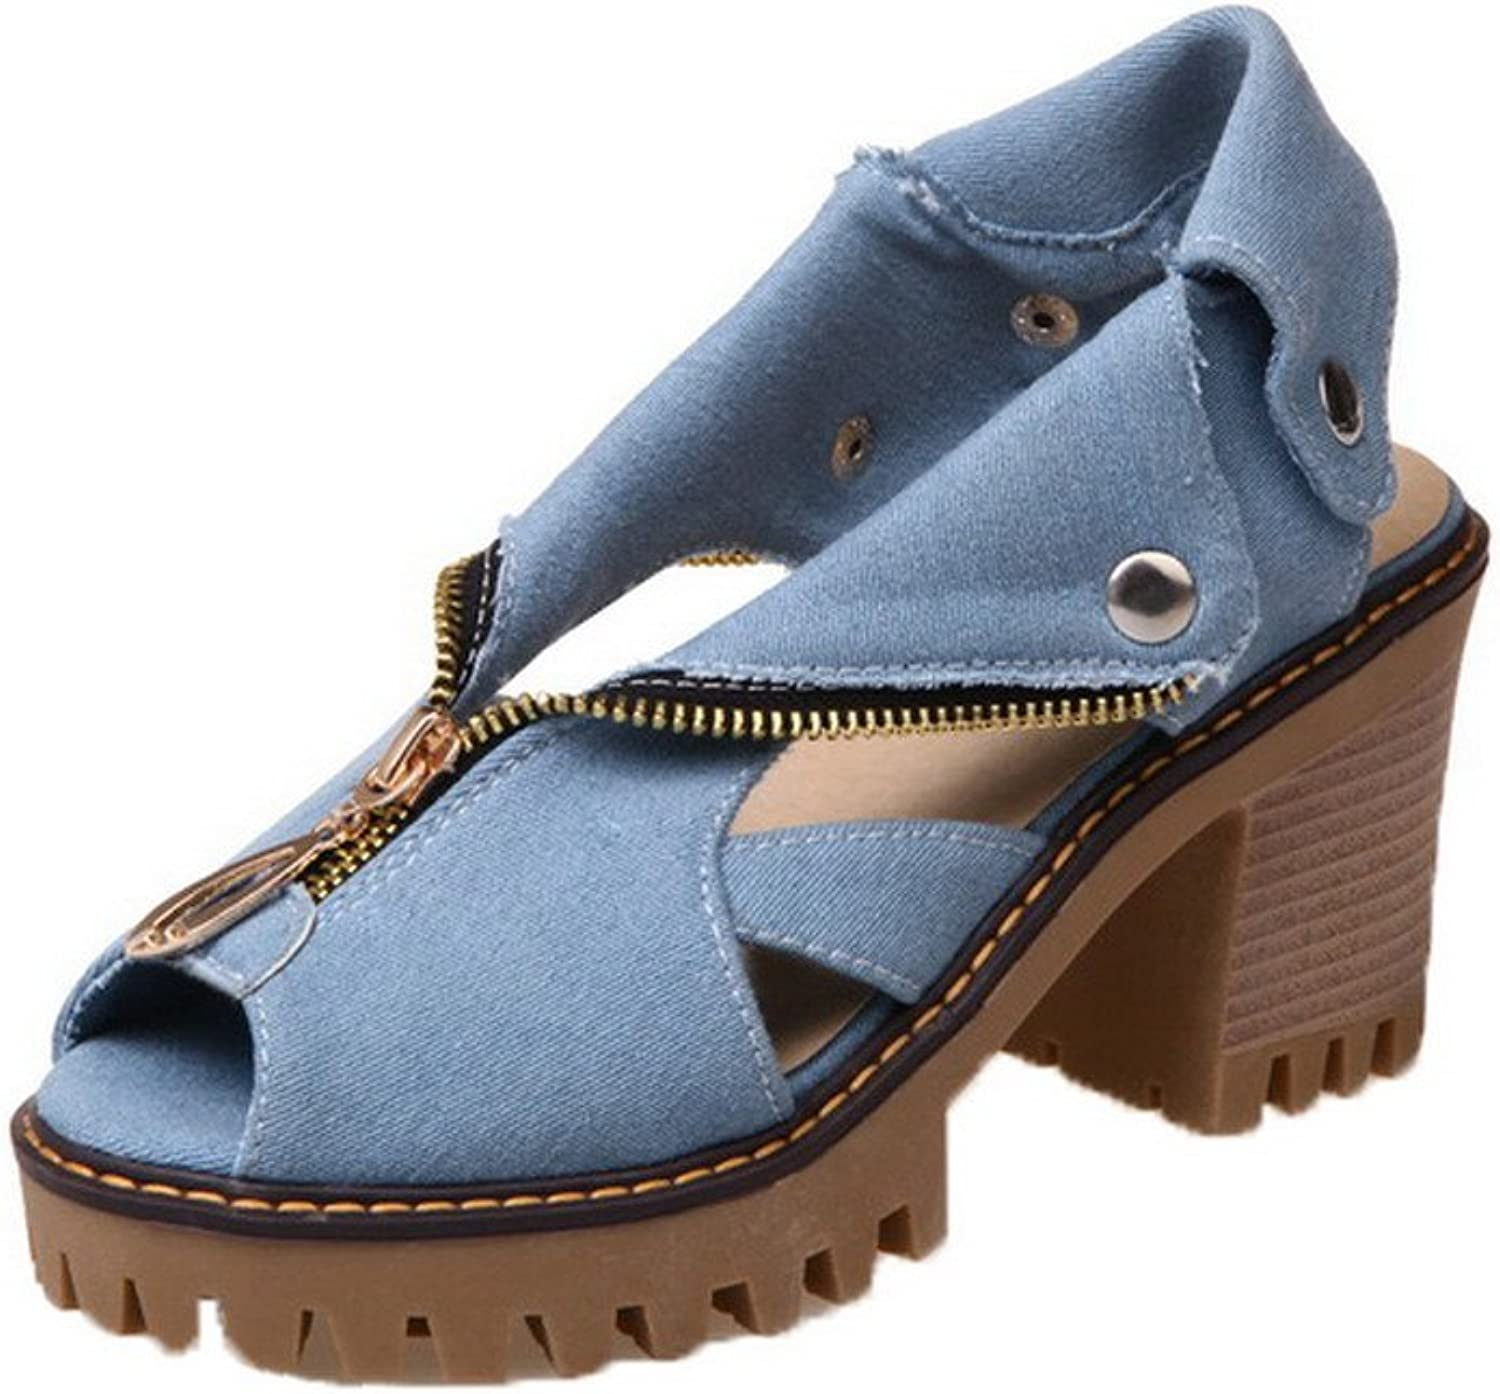 WeenFashion Women's Open-Toe Zipper Denim Solid High-Heels Sandals, AMGLX009731